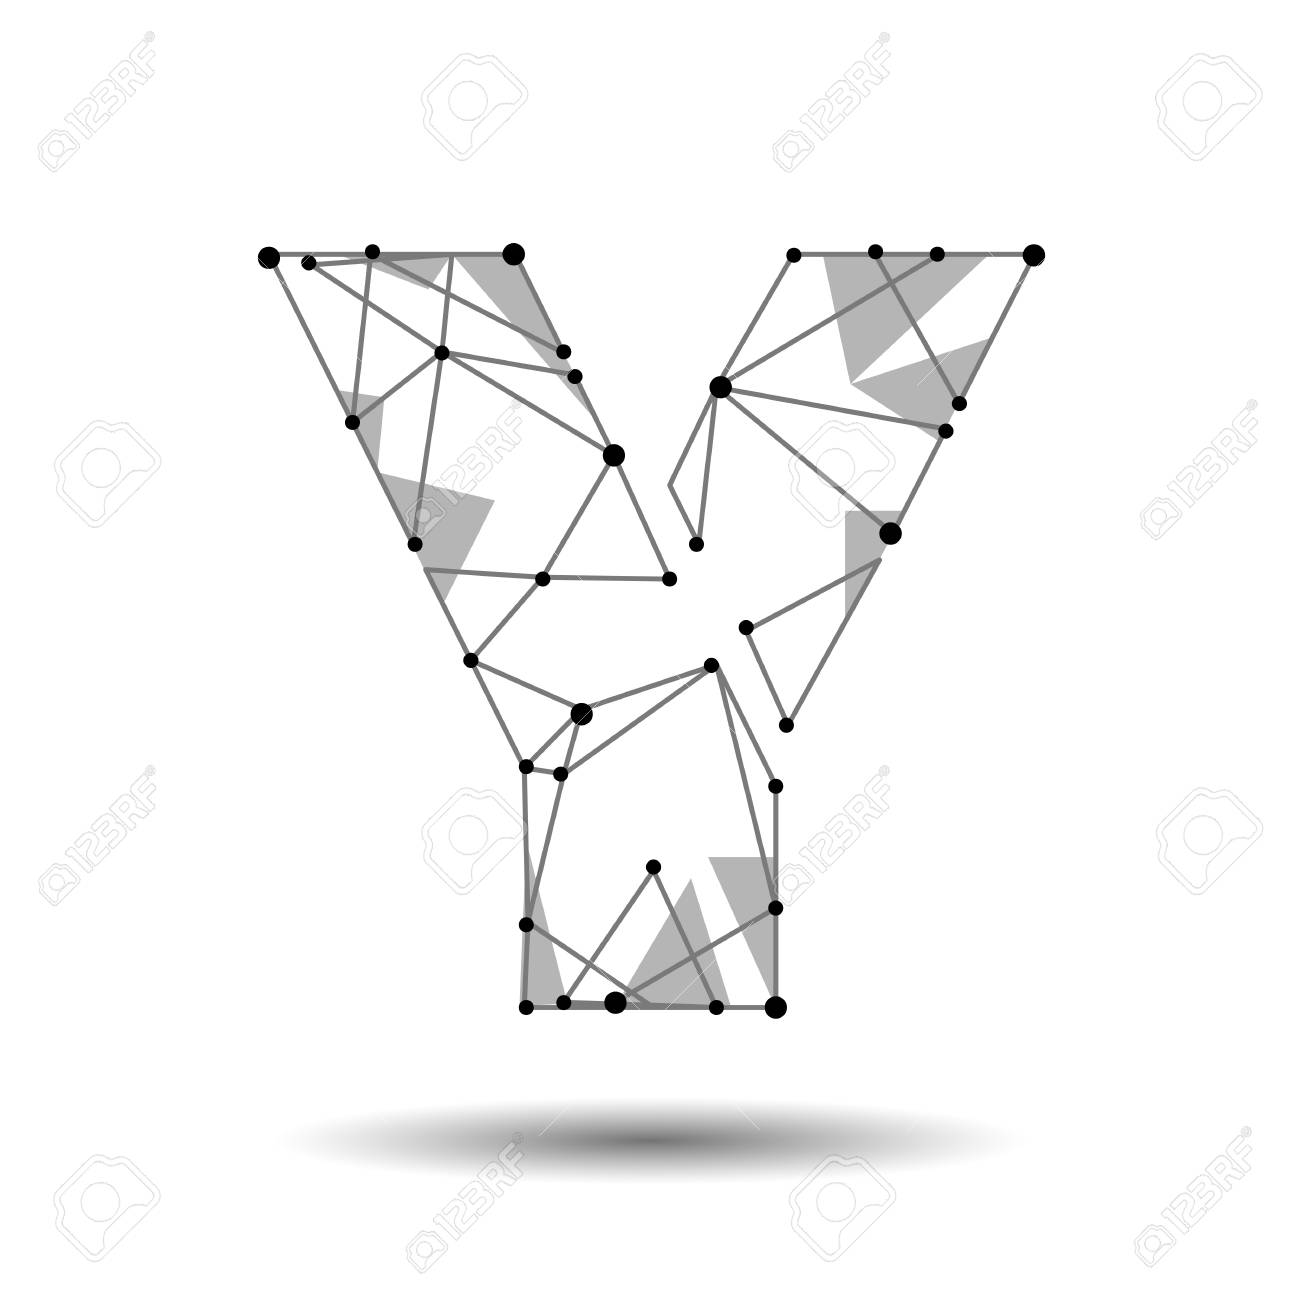 Low poly letter y english latin polygonal triangle connect dot low poly letter y english latin polygonal triangle connect dot point line black white altavistaventures Image collections